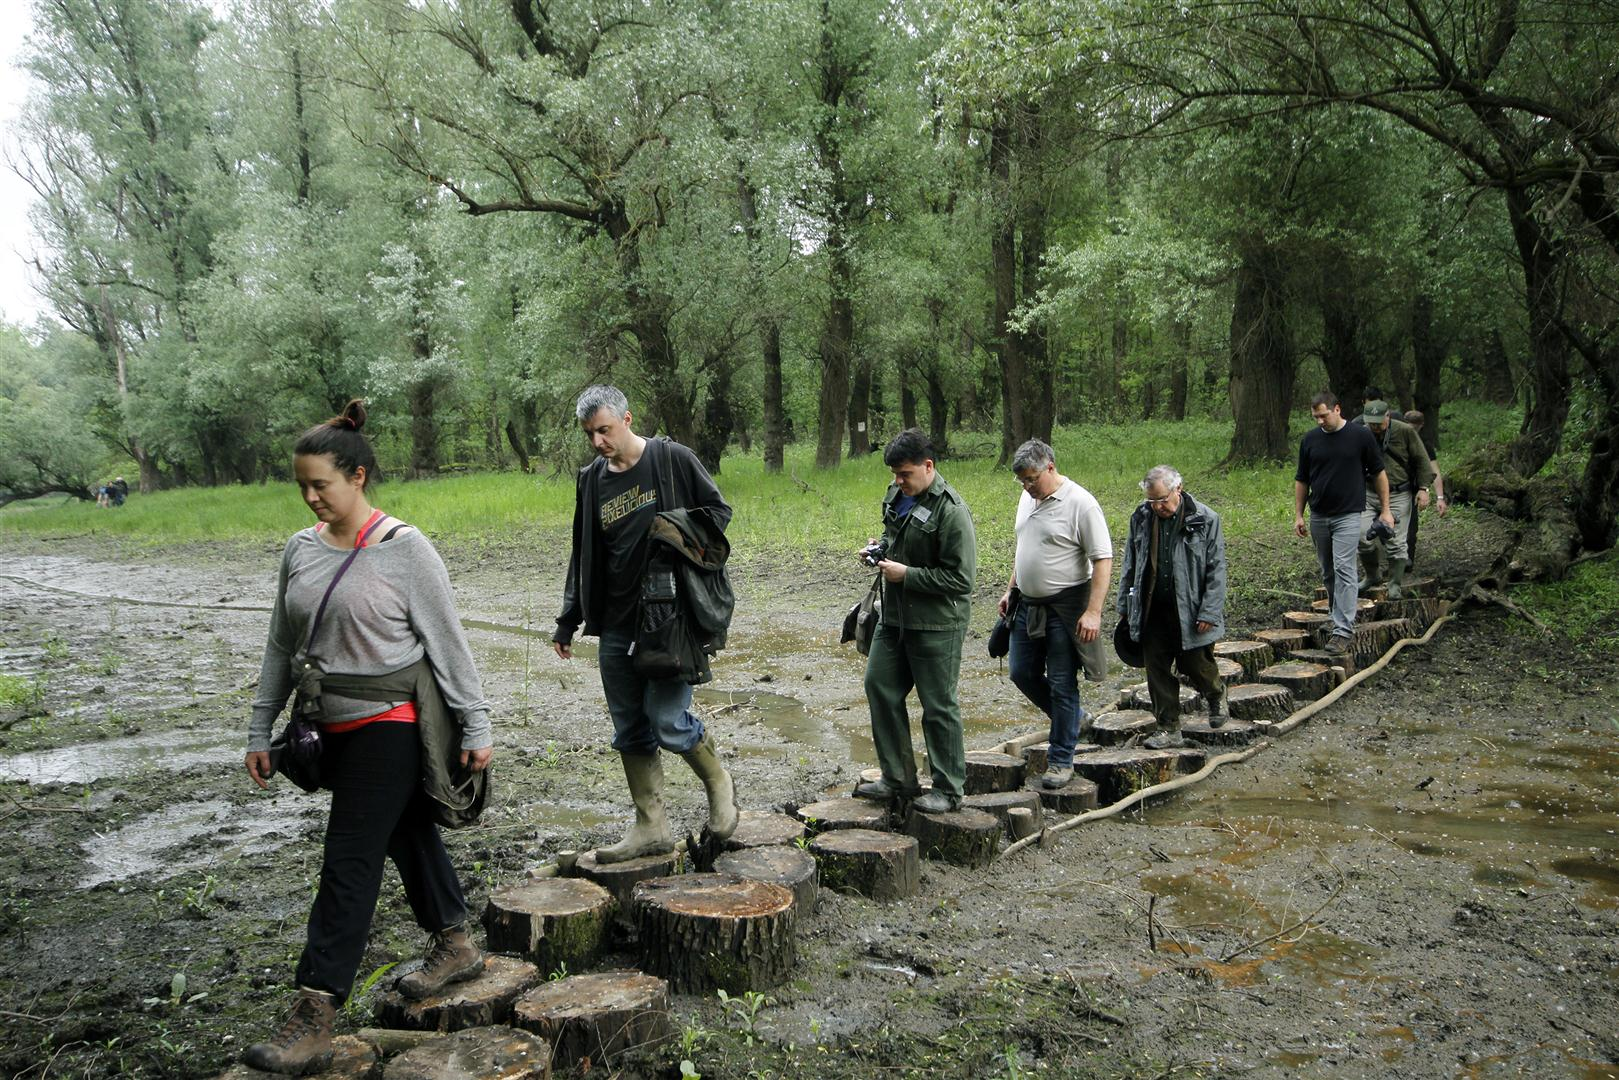 like stepping stones: chain of protected areas along Danube create ecologic corridor